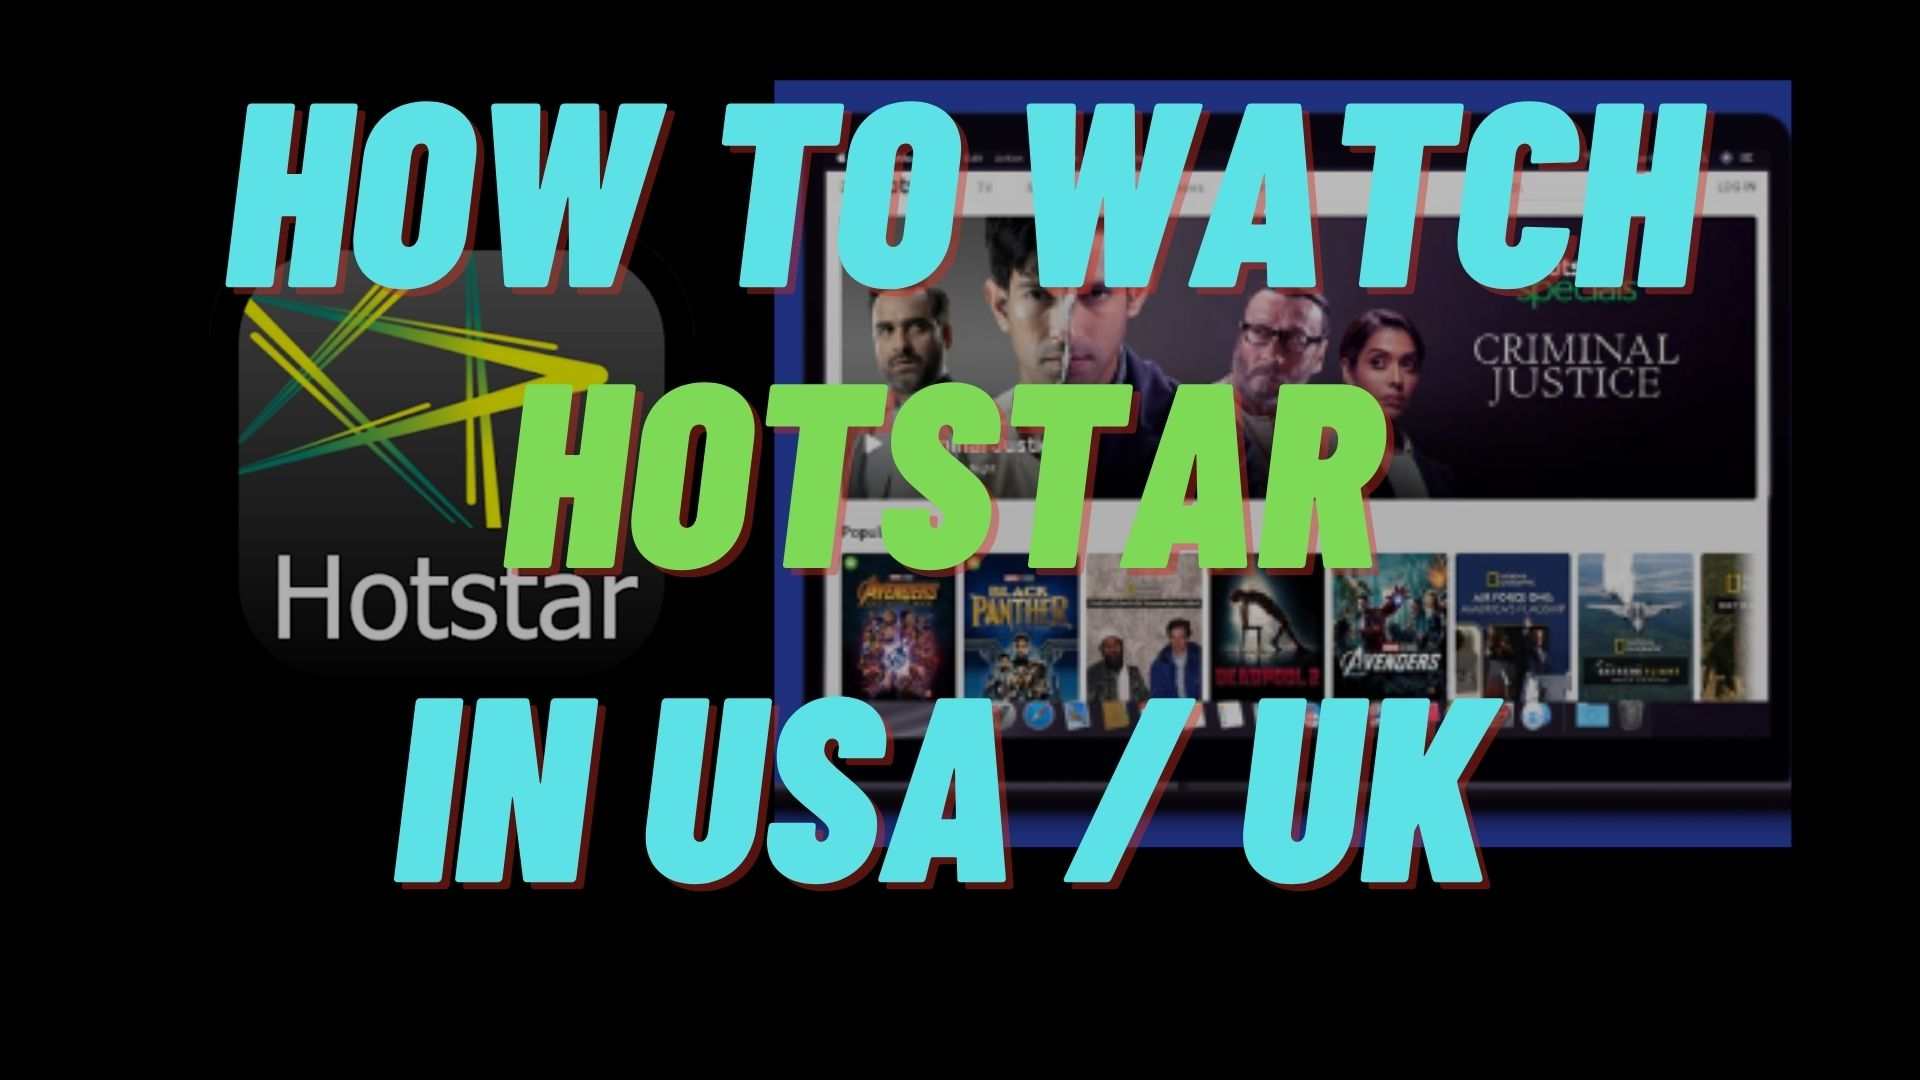 Watch Hotstar in the USA and UK